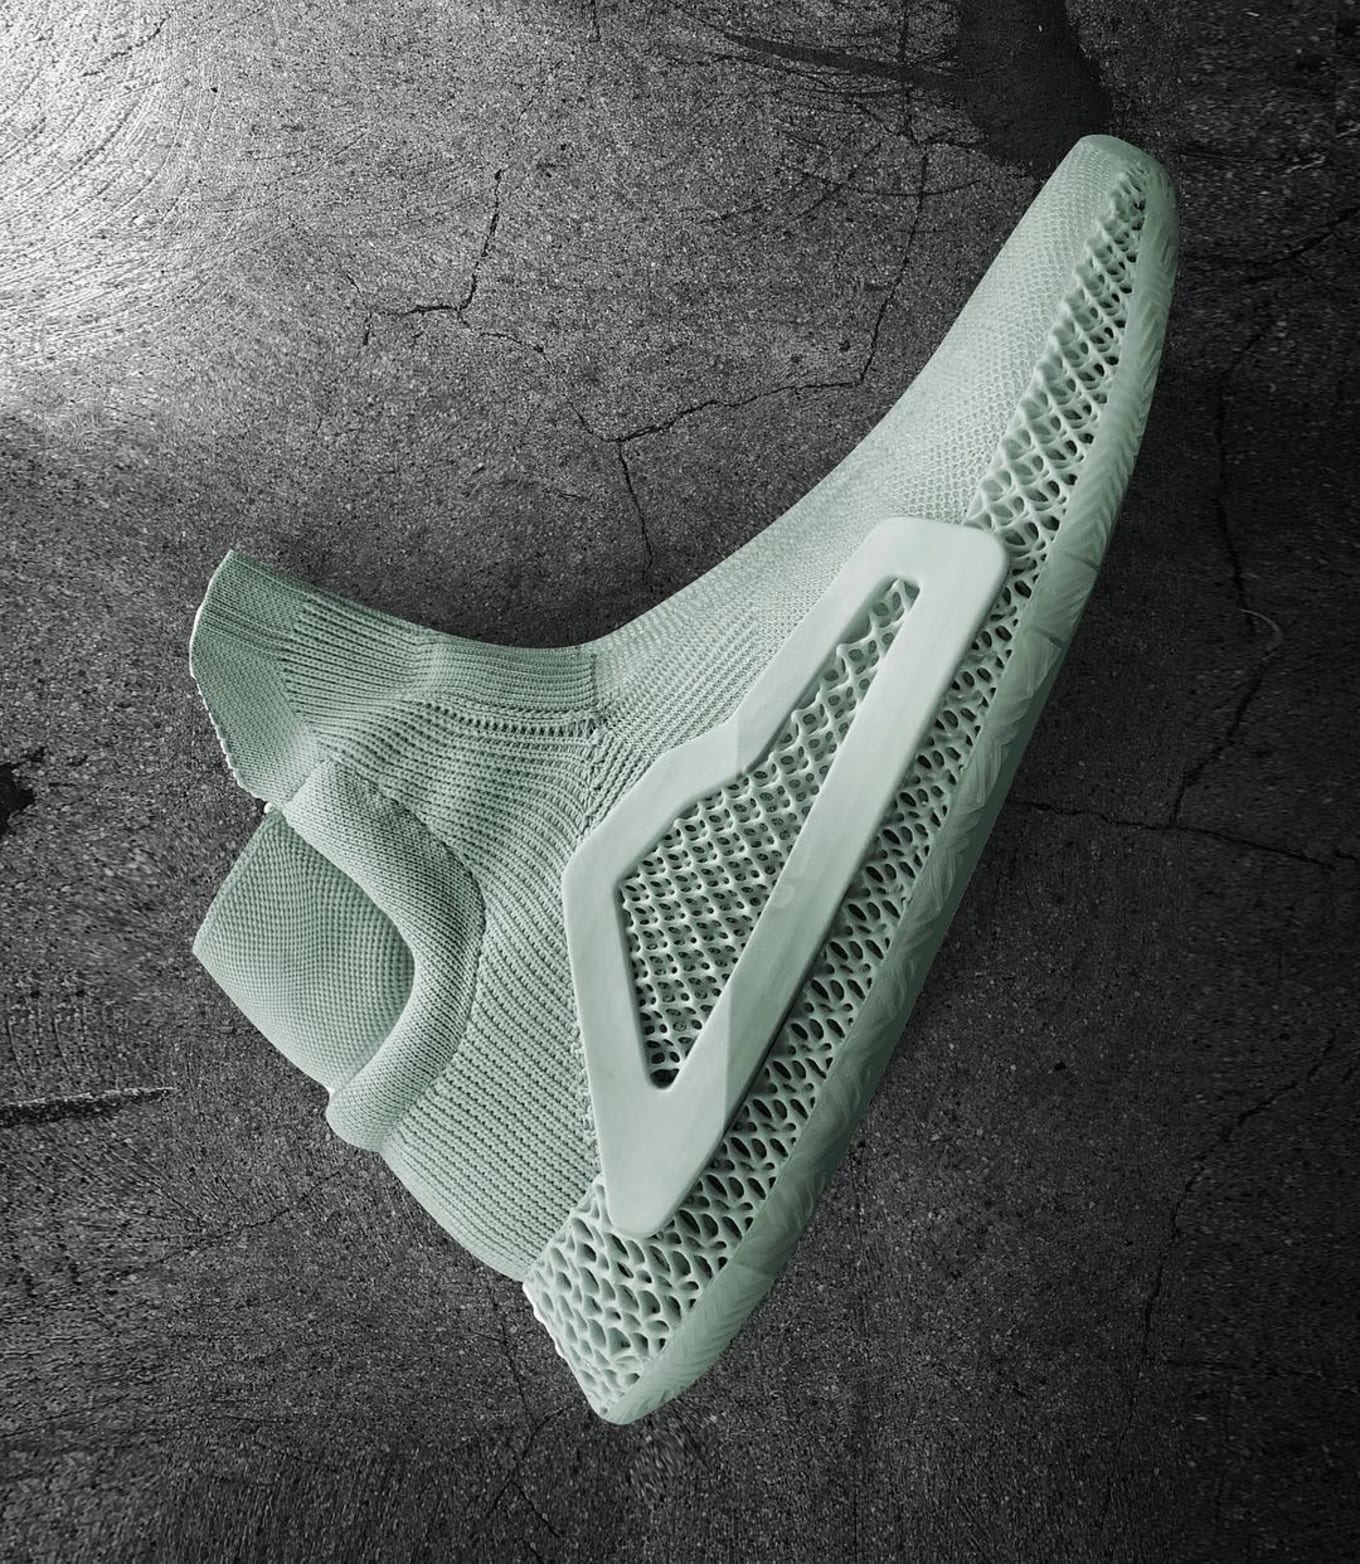 best service 3bf33 b3945 Is This What the Future of Basketball Sneakers Looks Like Adidas designer  unveils Futurecraft 4D ...